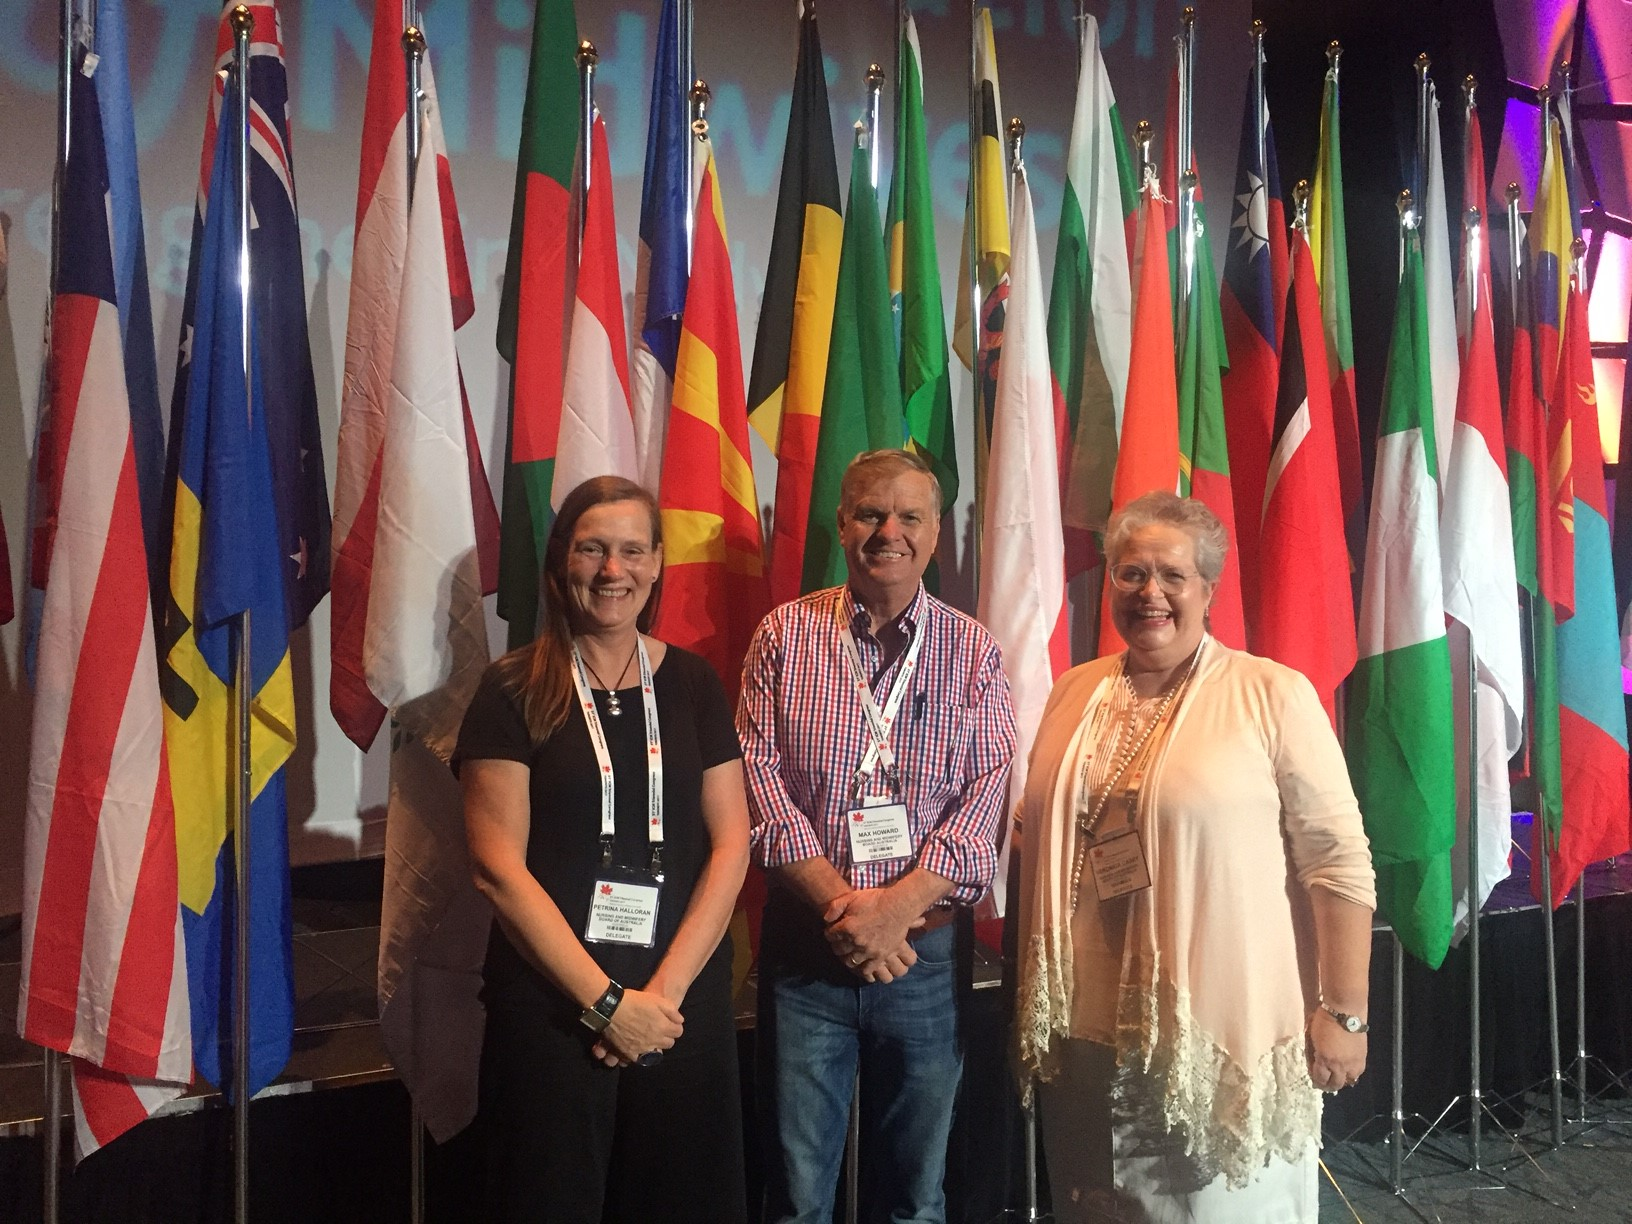 Members of the NMBA and the AHPRA midwifery policy team stand in front of national flags at ICM Congress 2017